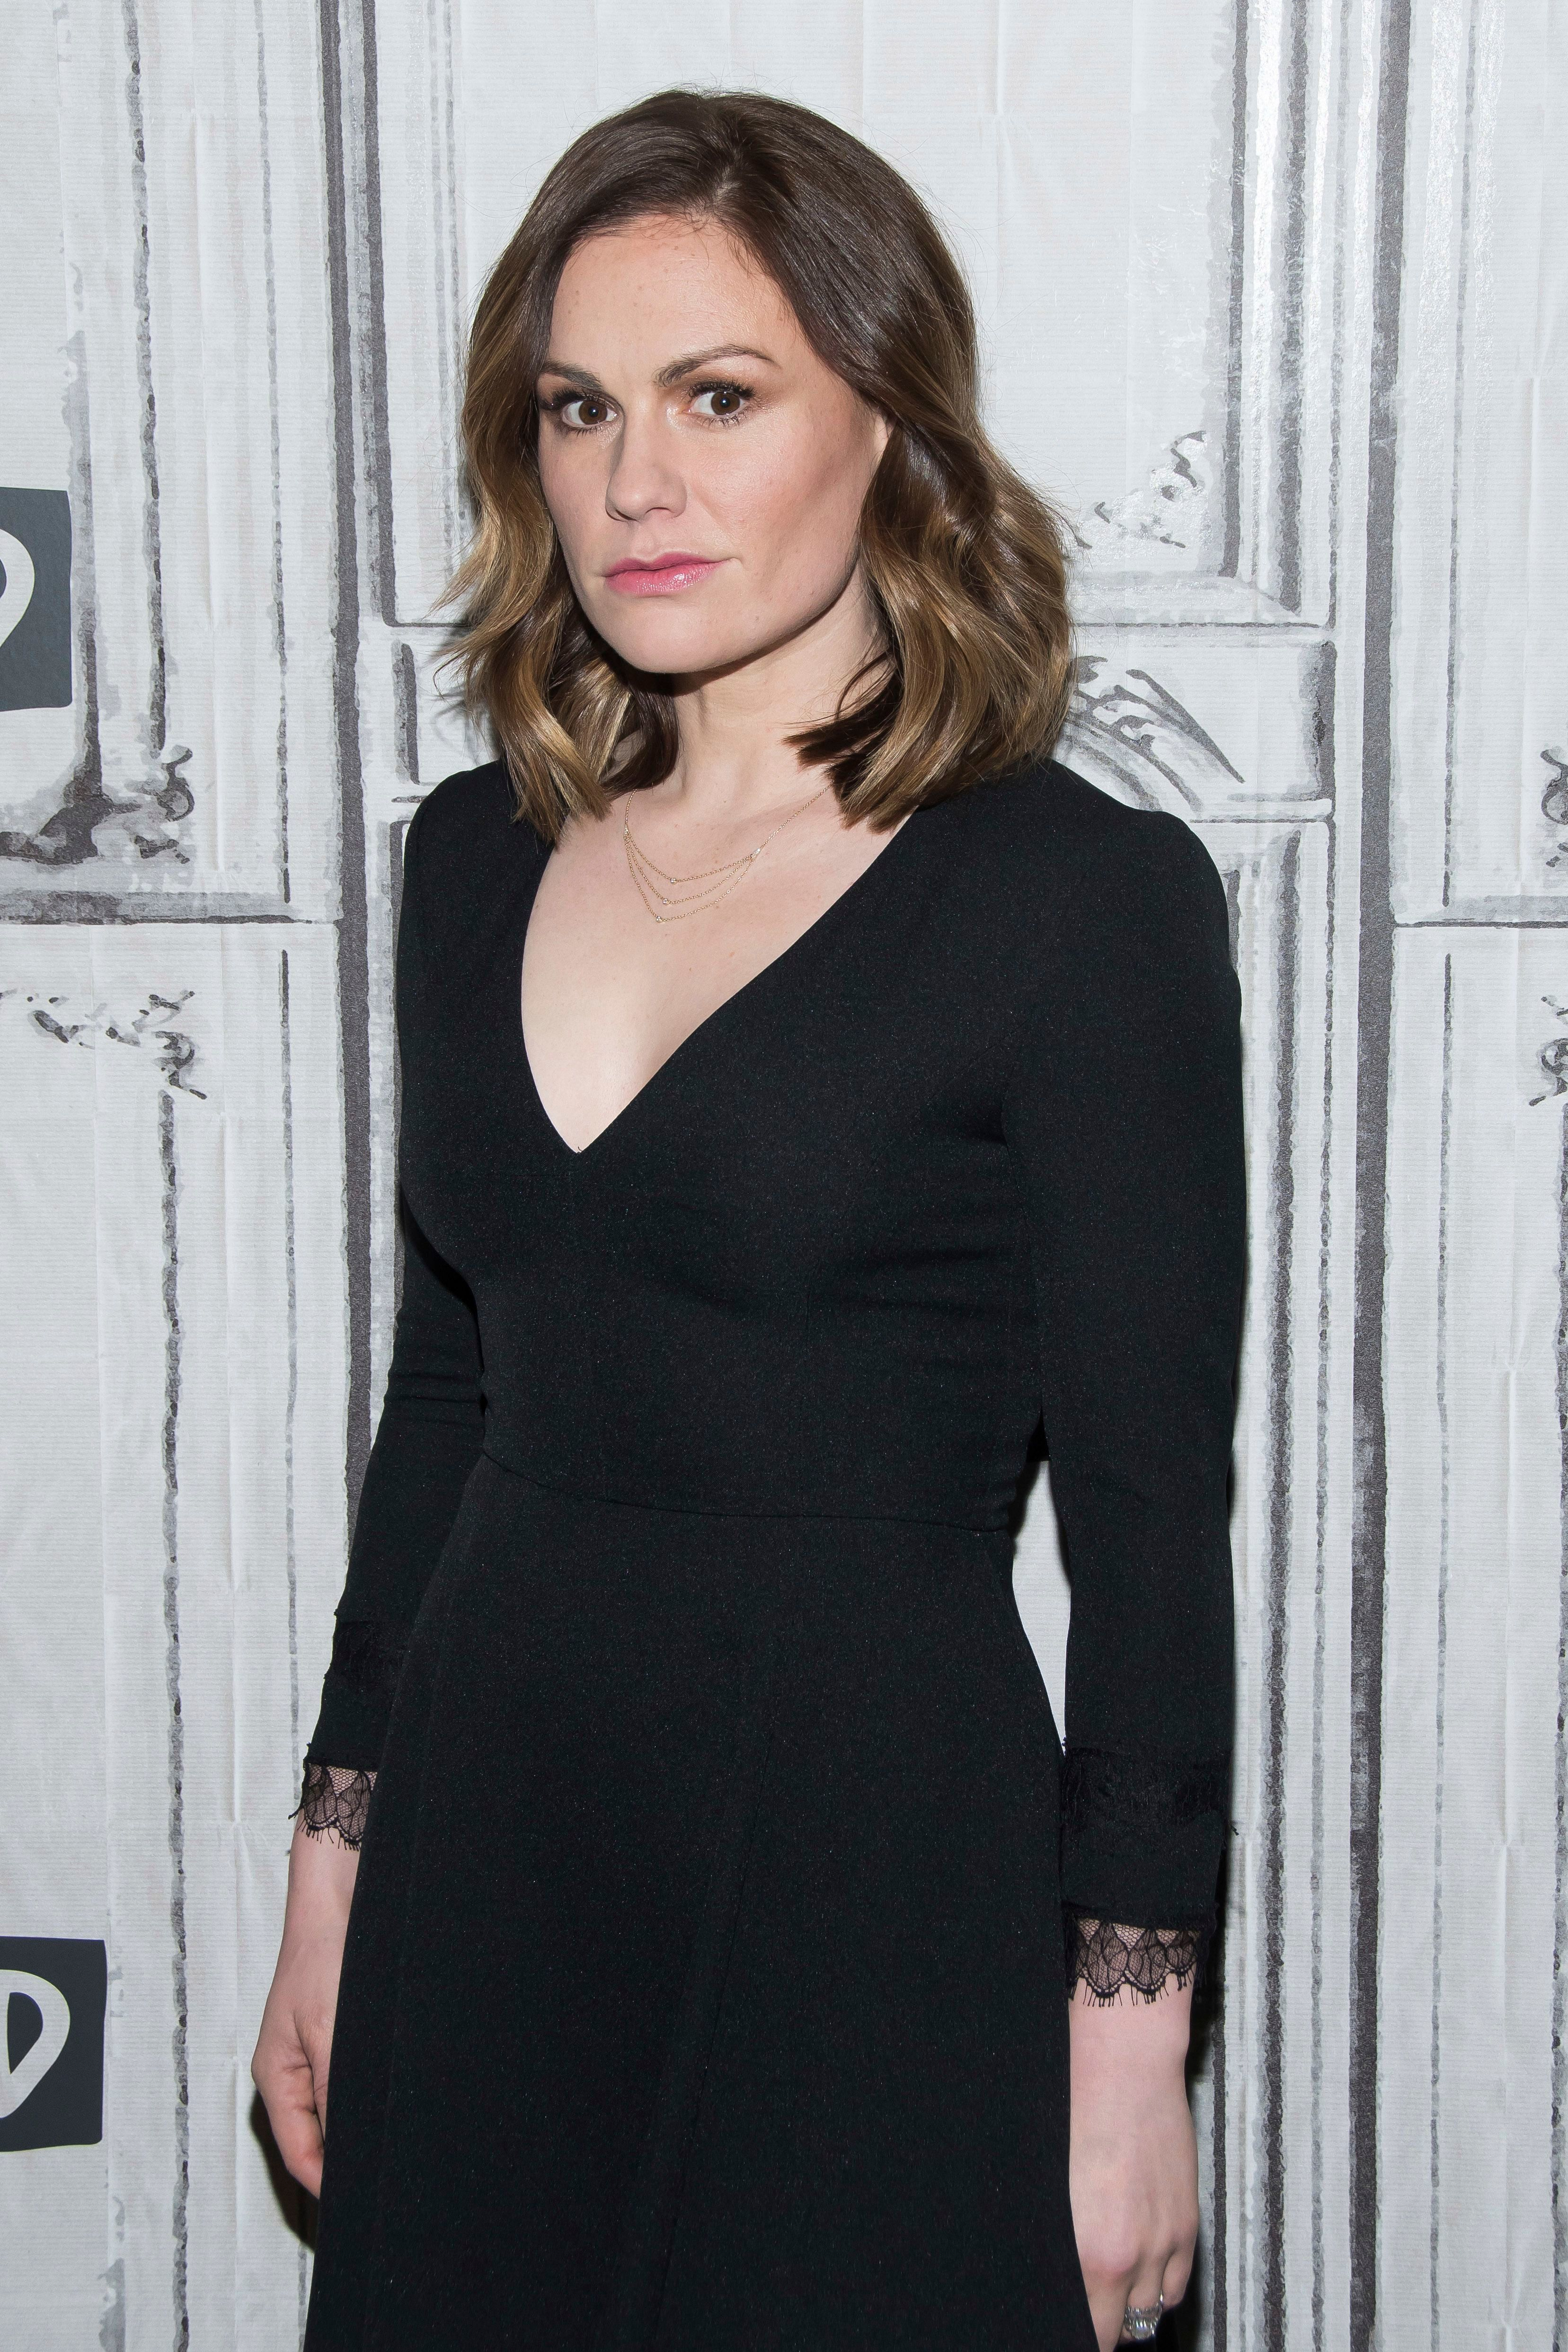 Anna Paquin participates in the BUILD Speaker Series in New York City on Jan. 18, 2018.